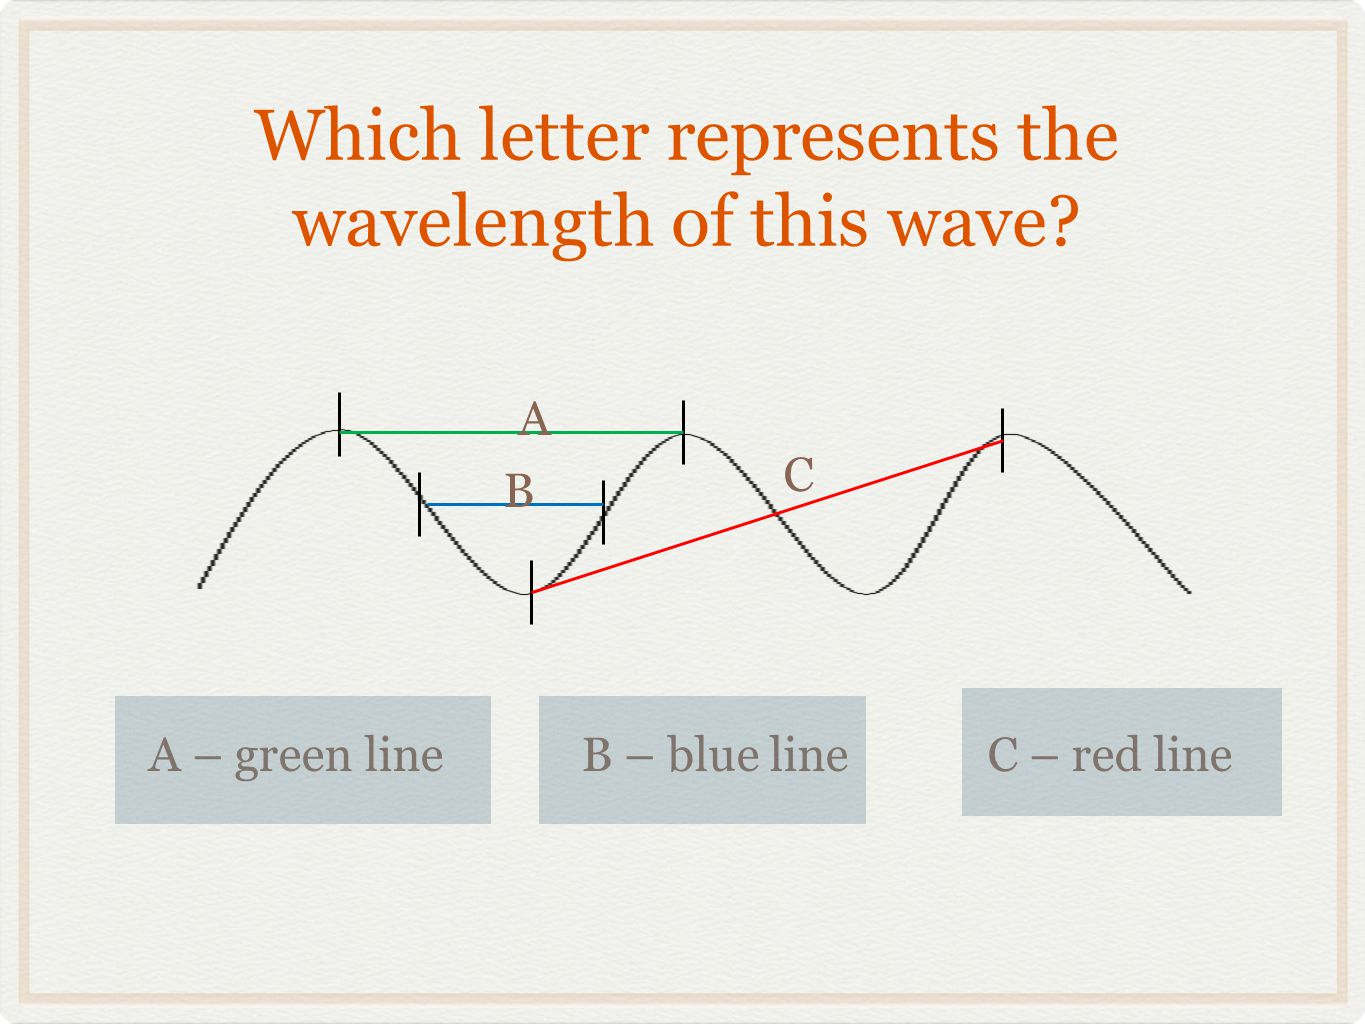 Which letter represents the wavelength of this wave